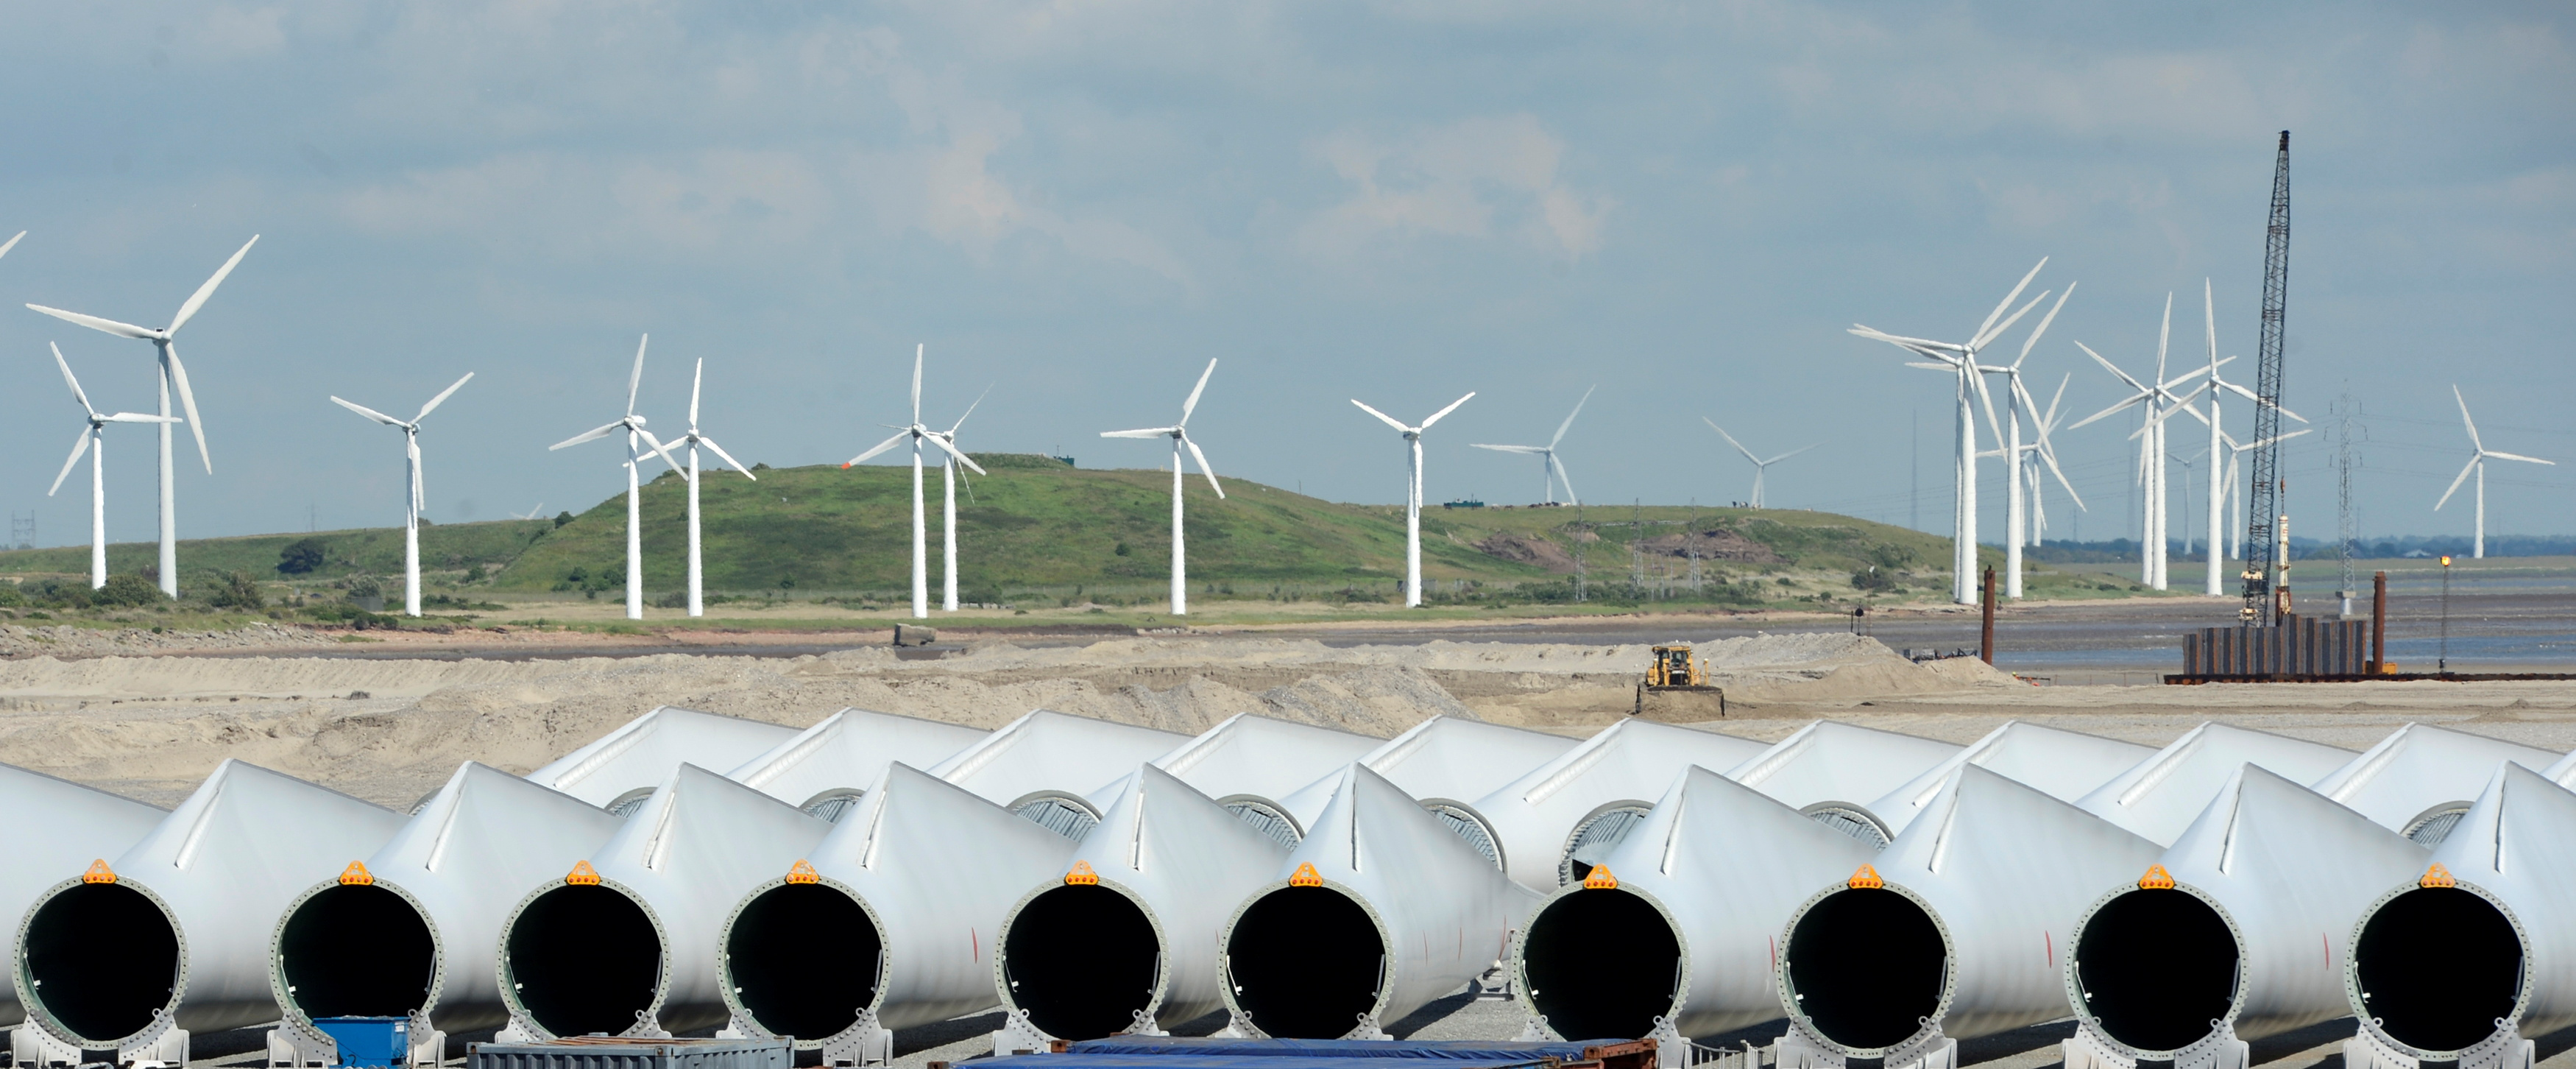 Rotor-blades are pictured at Siemens Wind Power's port of export in Esbjerg June 11, 2012.  REUTERS/Fabian Bimmer/File Photo